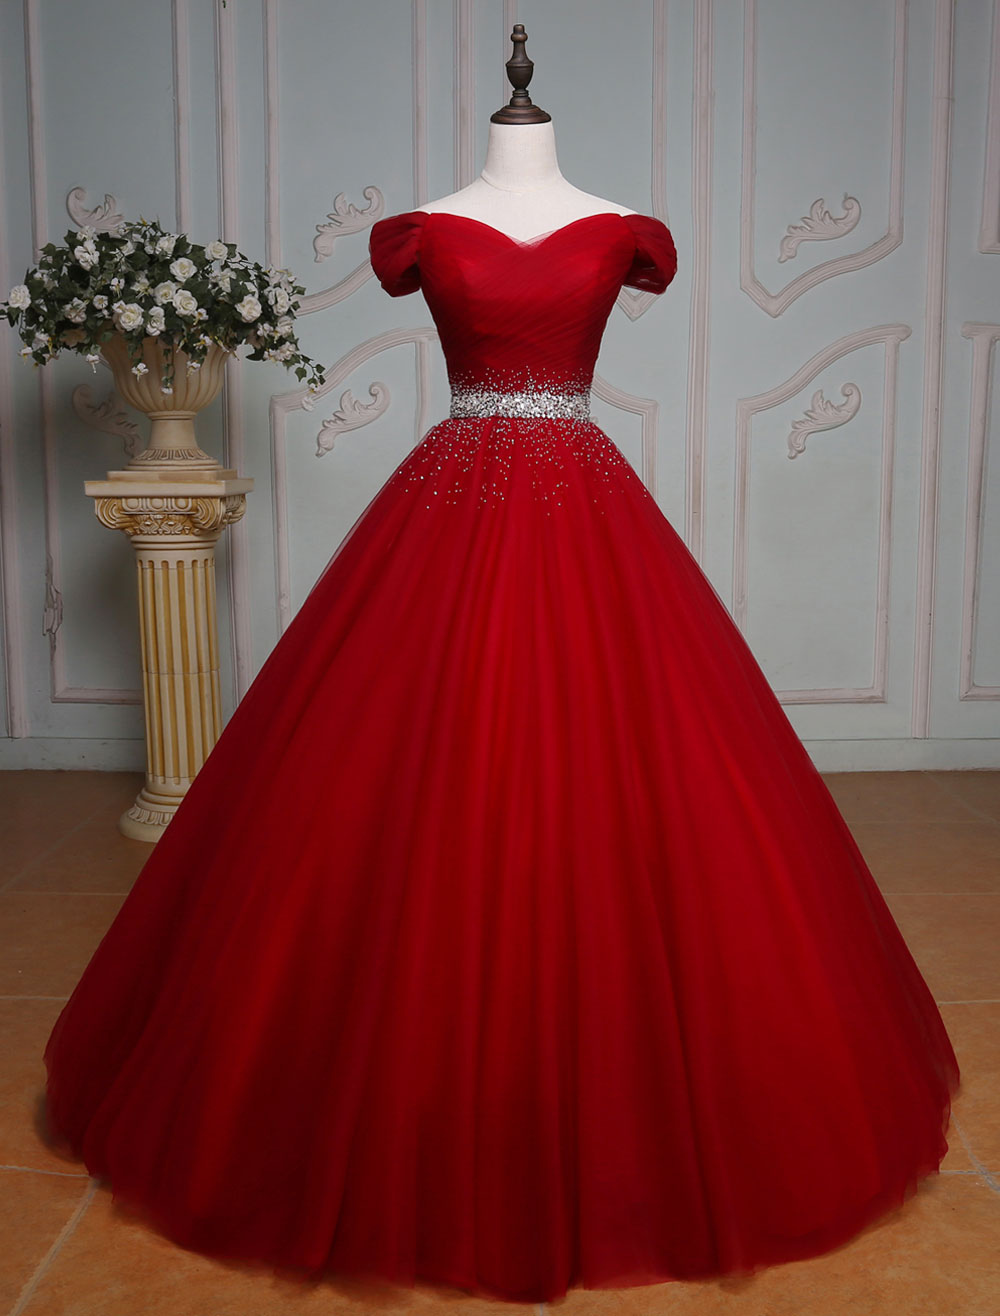 Burgundy Quinceanera Dresses Princess Tulle Beading Off The Shoulder Pleated Floor Length Women's Pageant Dress